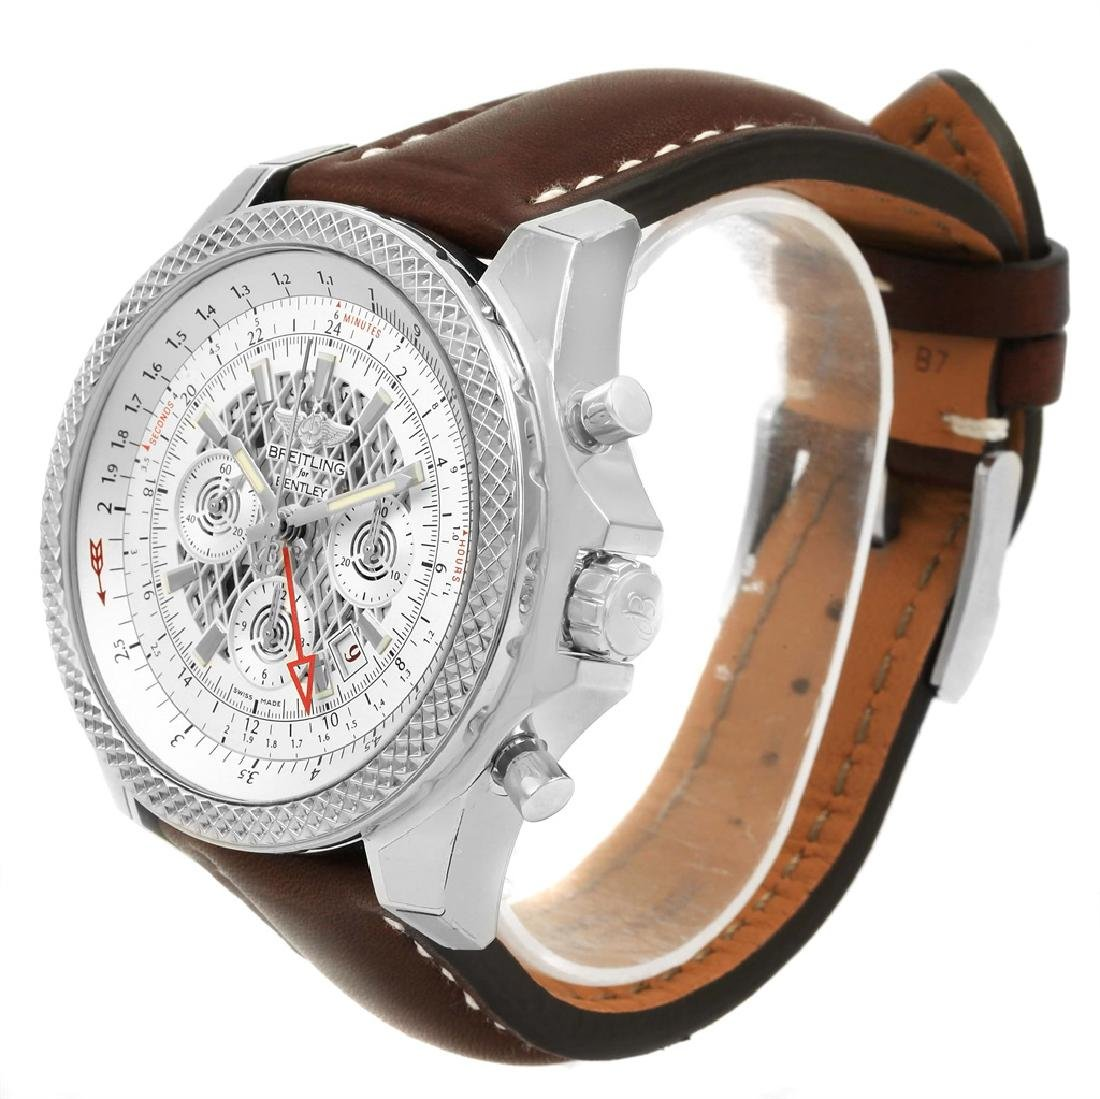 Breitling Bentley GMT Chronograph Mens Wristwatch - 3